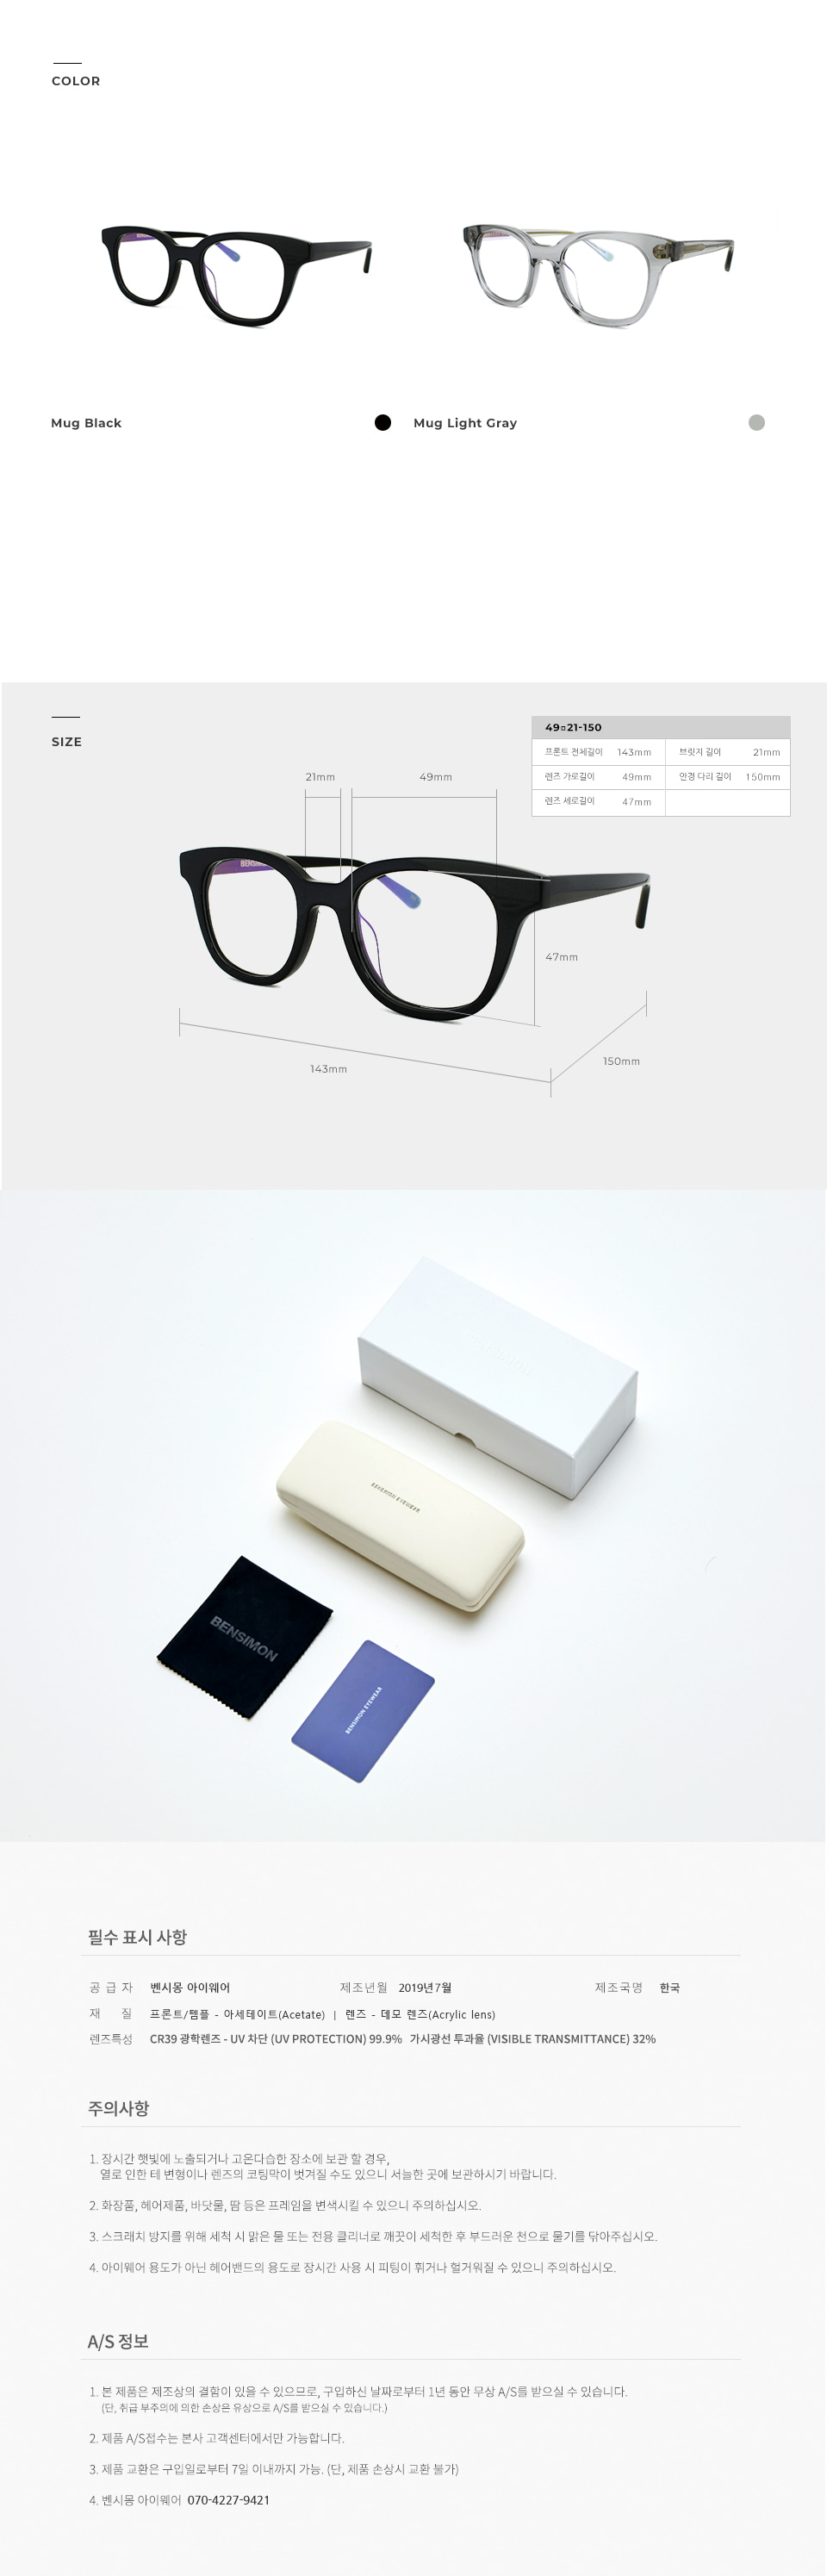 벤시몽아이웨어(BENSIMON EYEWEAR) BENSIMON Mug Light Gray